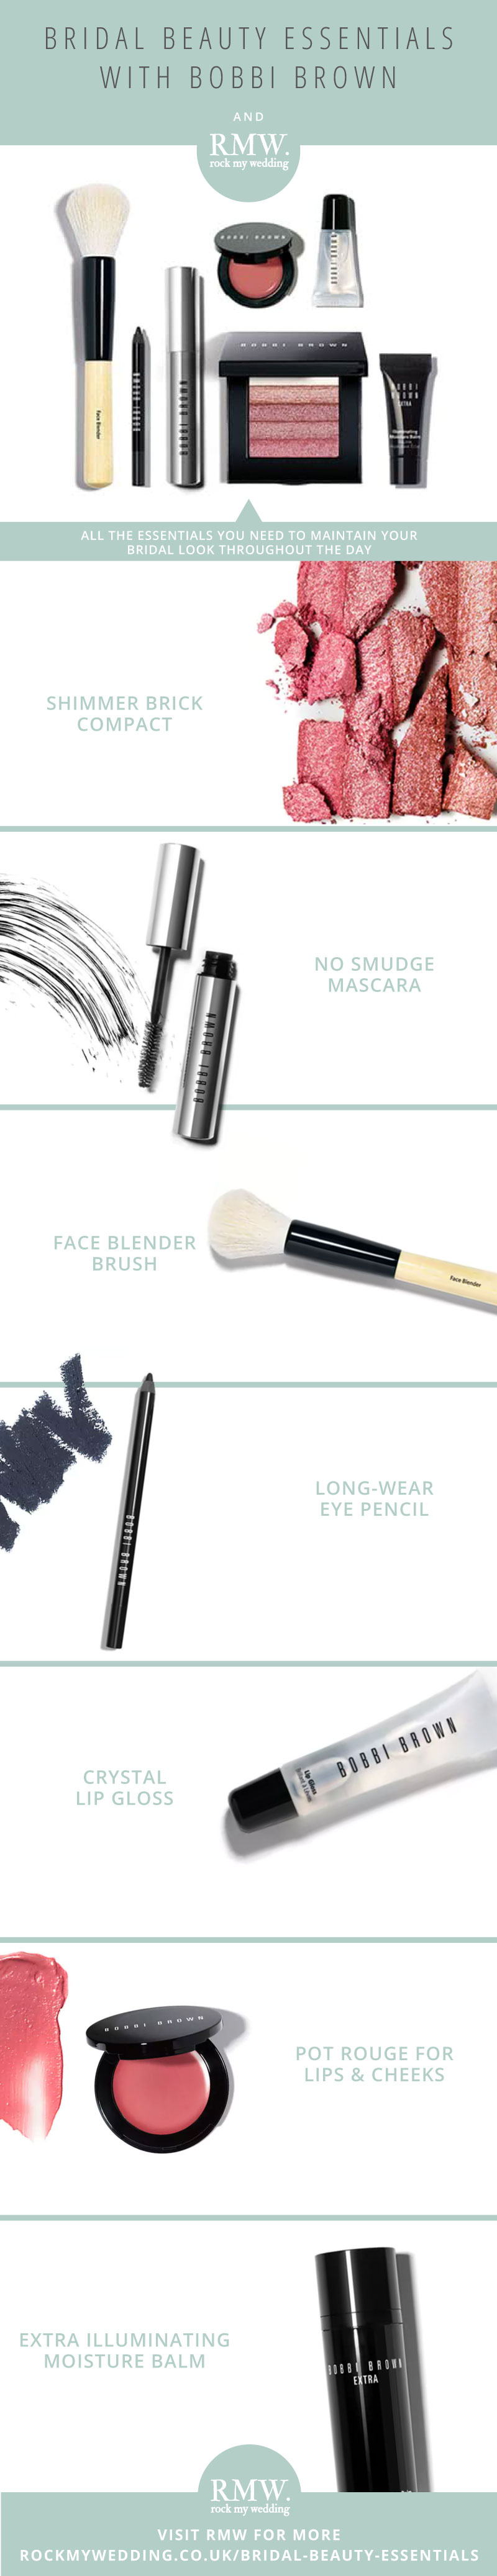 Bridal Make Up Essentials From Bobbi Brown // Natural Bridal Make Up // Doing Your Own Wedding Make Up